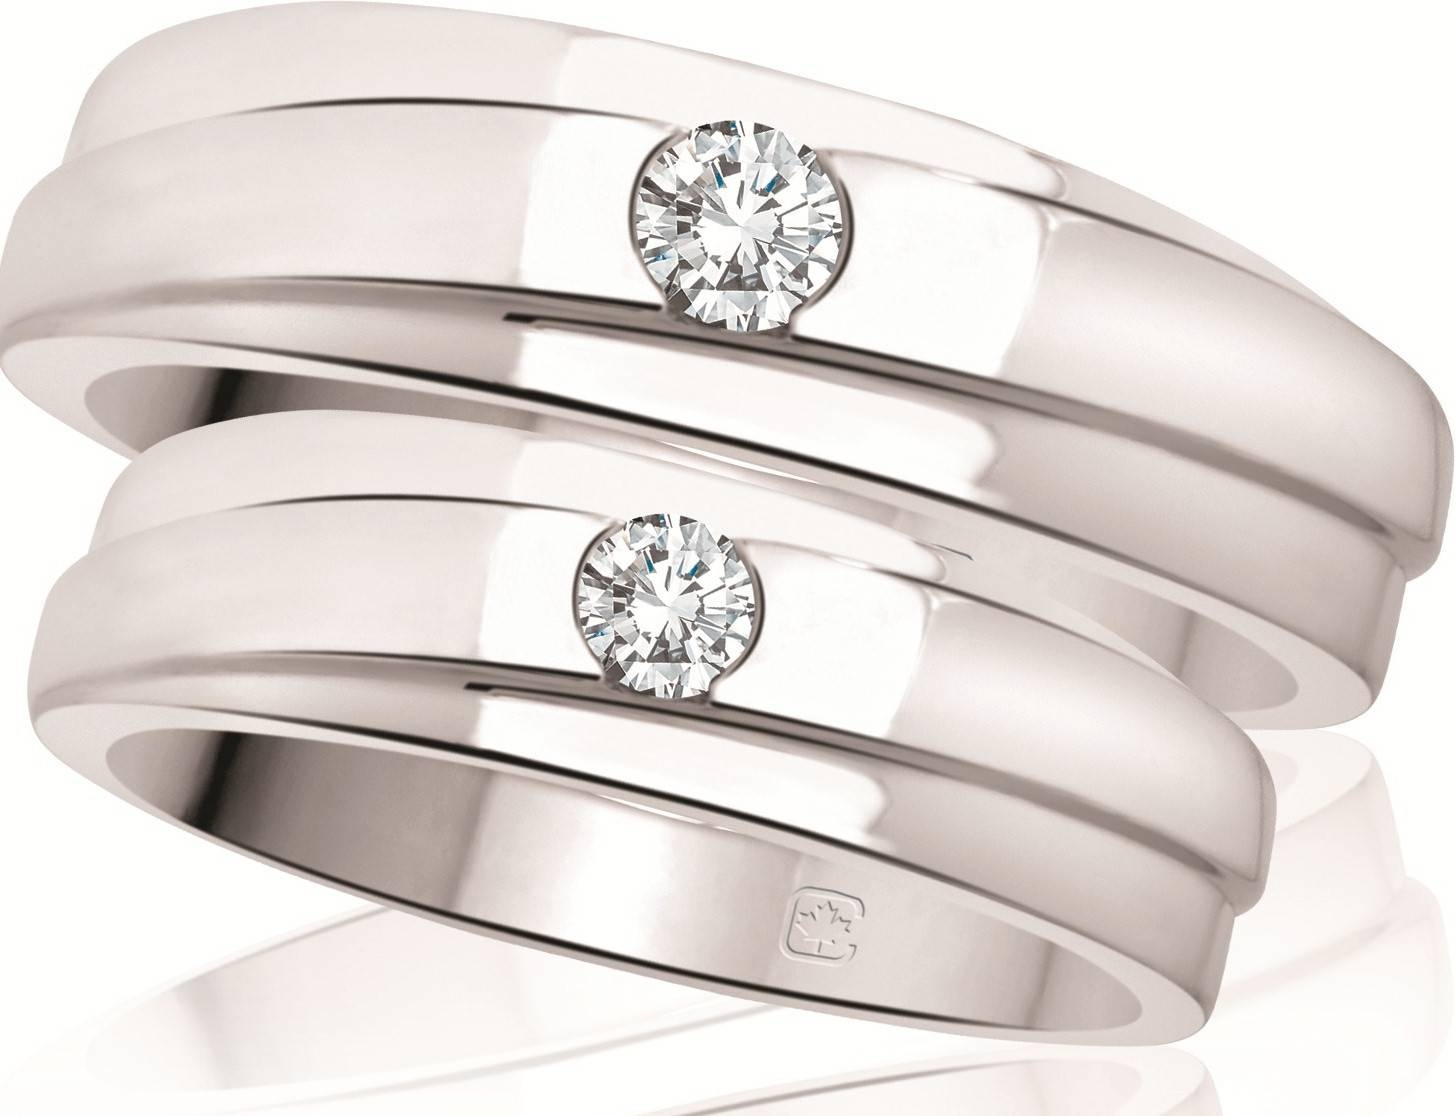 Product Detail Throughout Matching Engagement Rings For Him And Her (View 11 of 15)